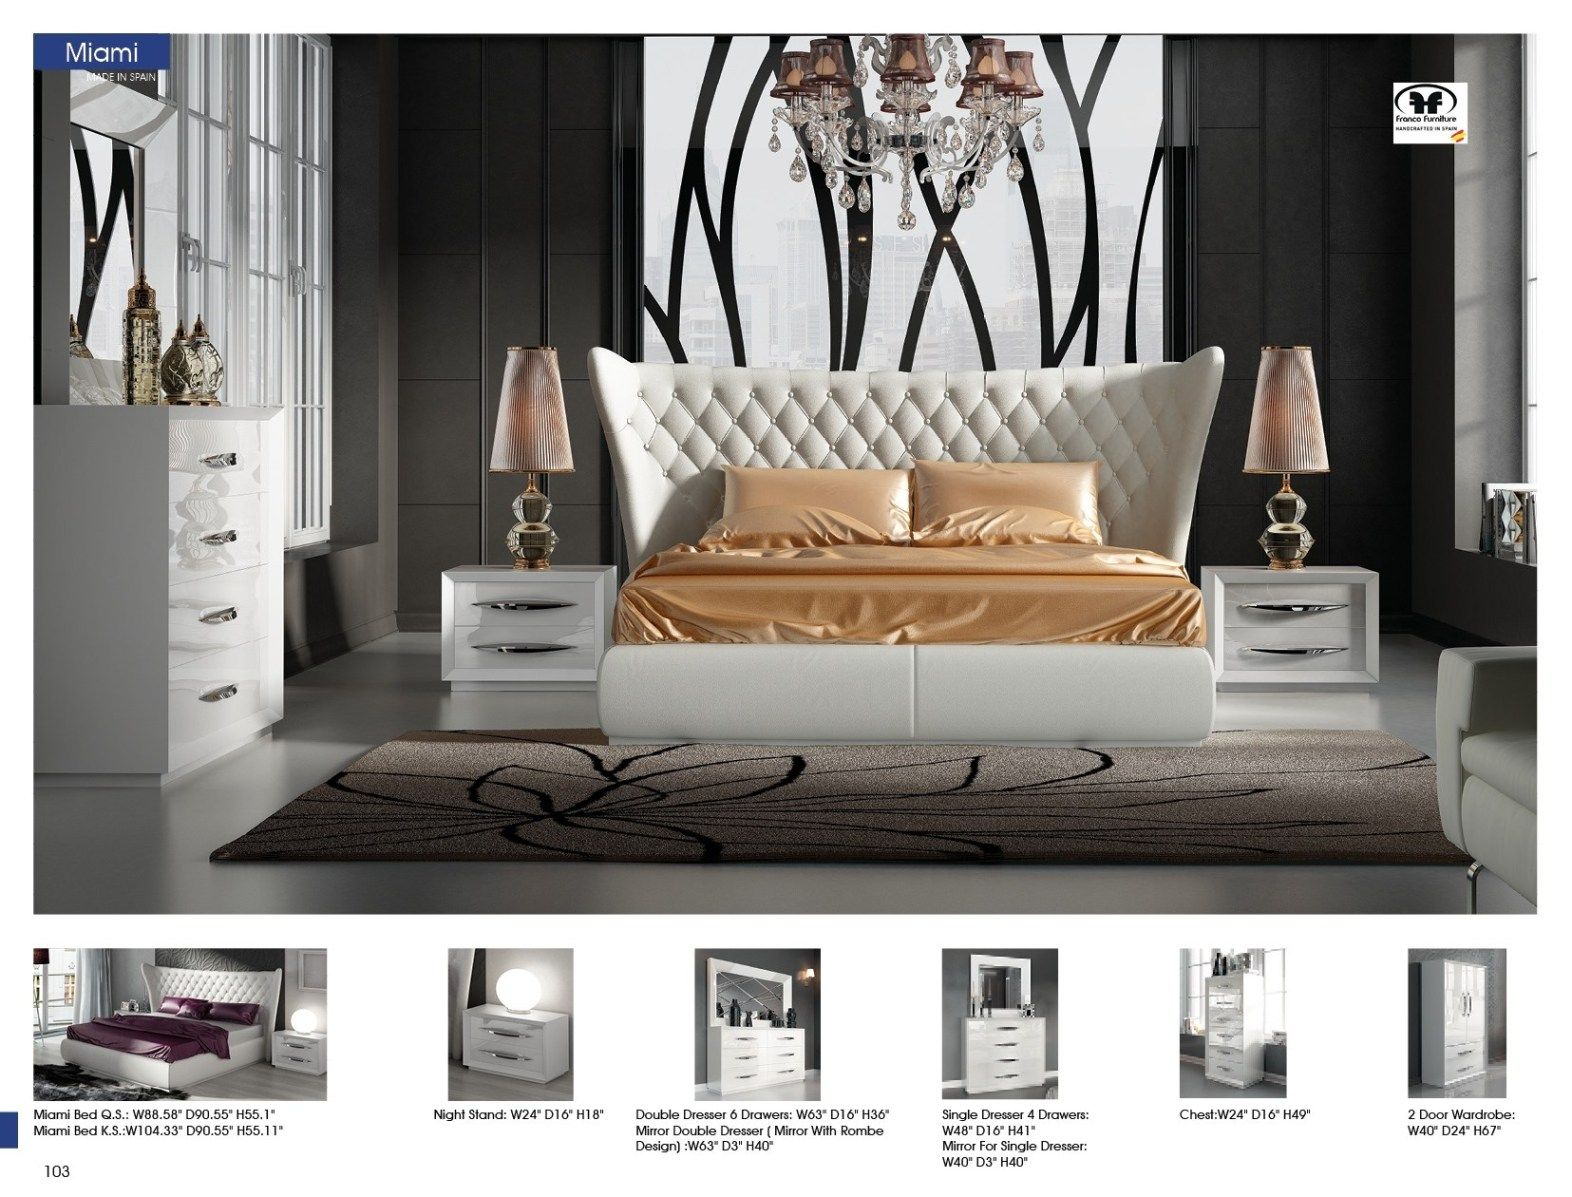 9 Piece Miami Modern Bedroom Set Made In Spain - USA Furniture